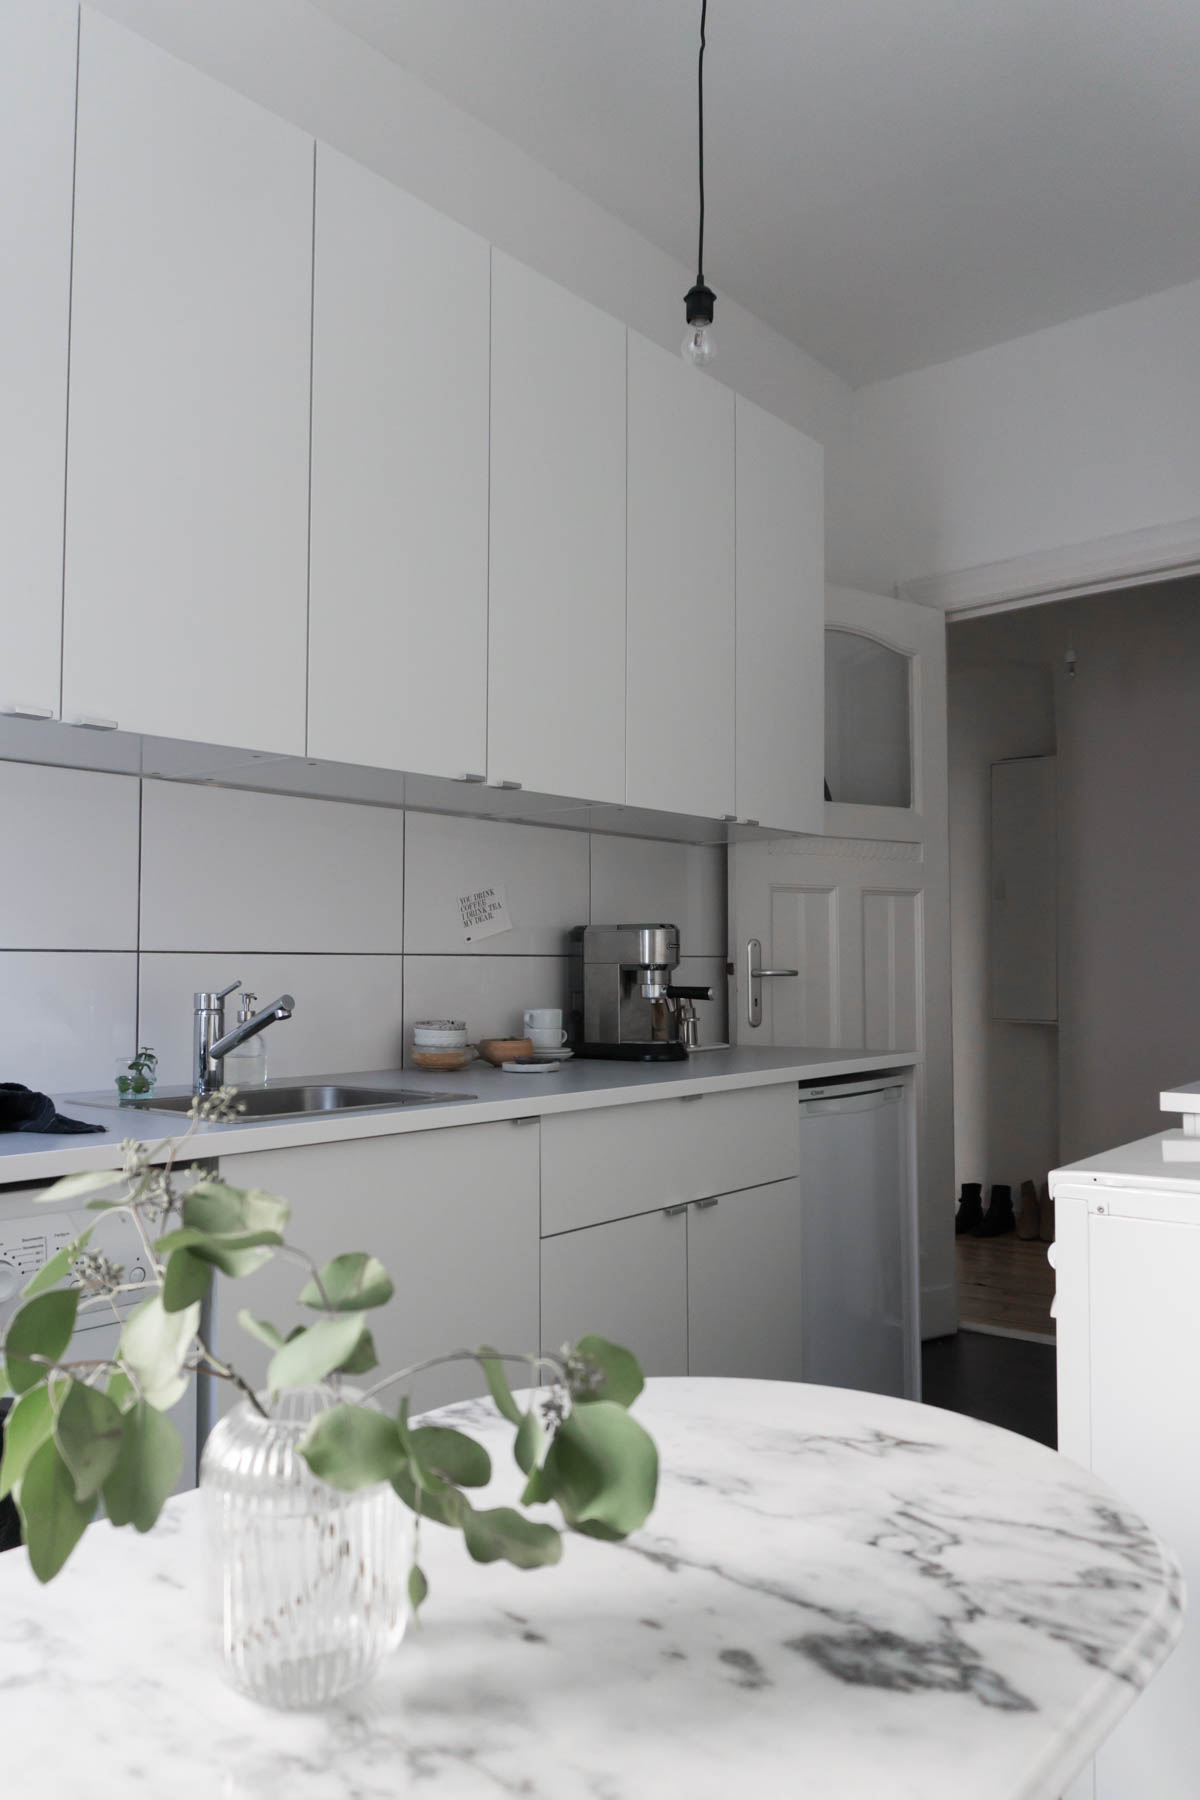 5 Tips For Designing An Ikea Kitchen Rg Daily,Design And Technology Tools List With Pictures